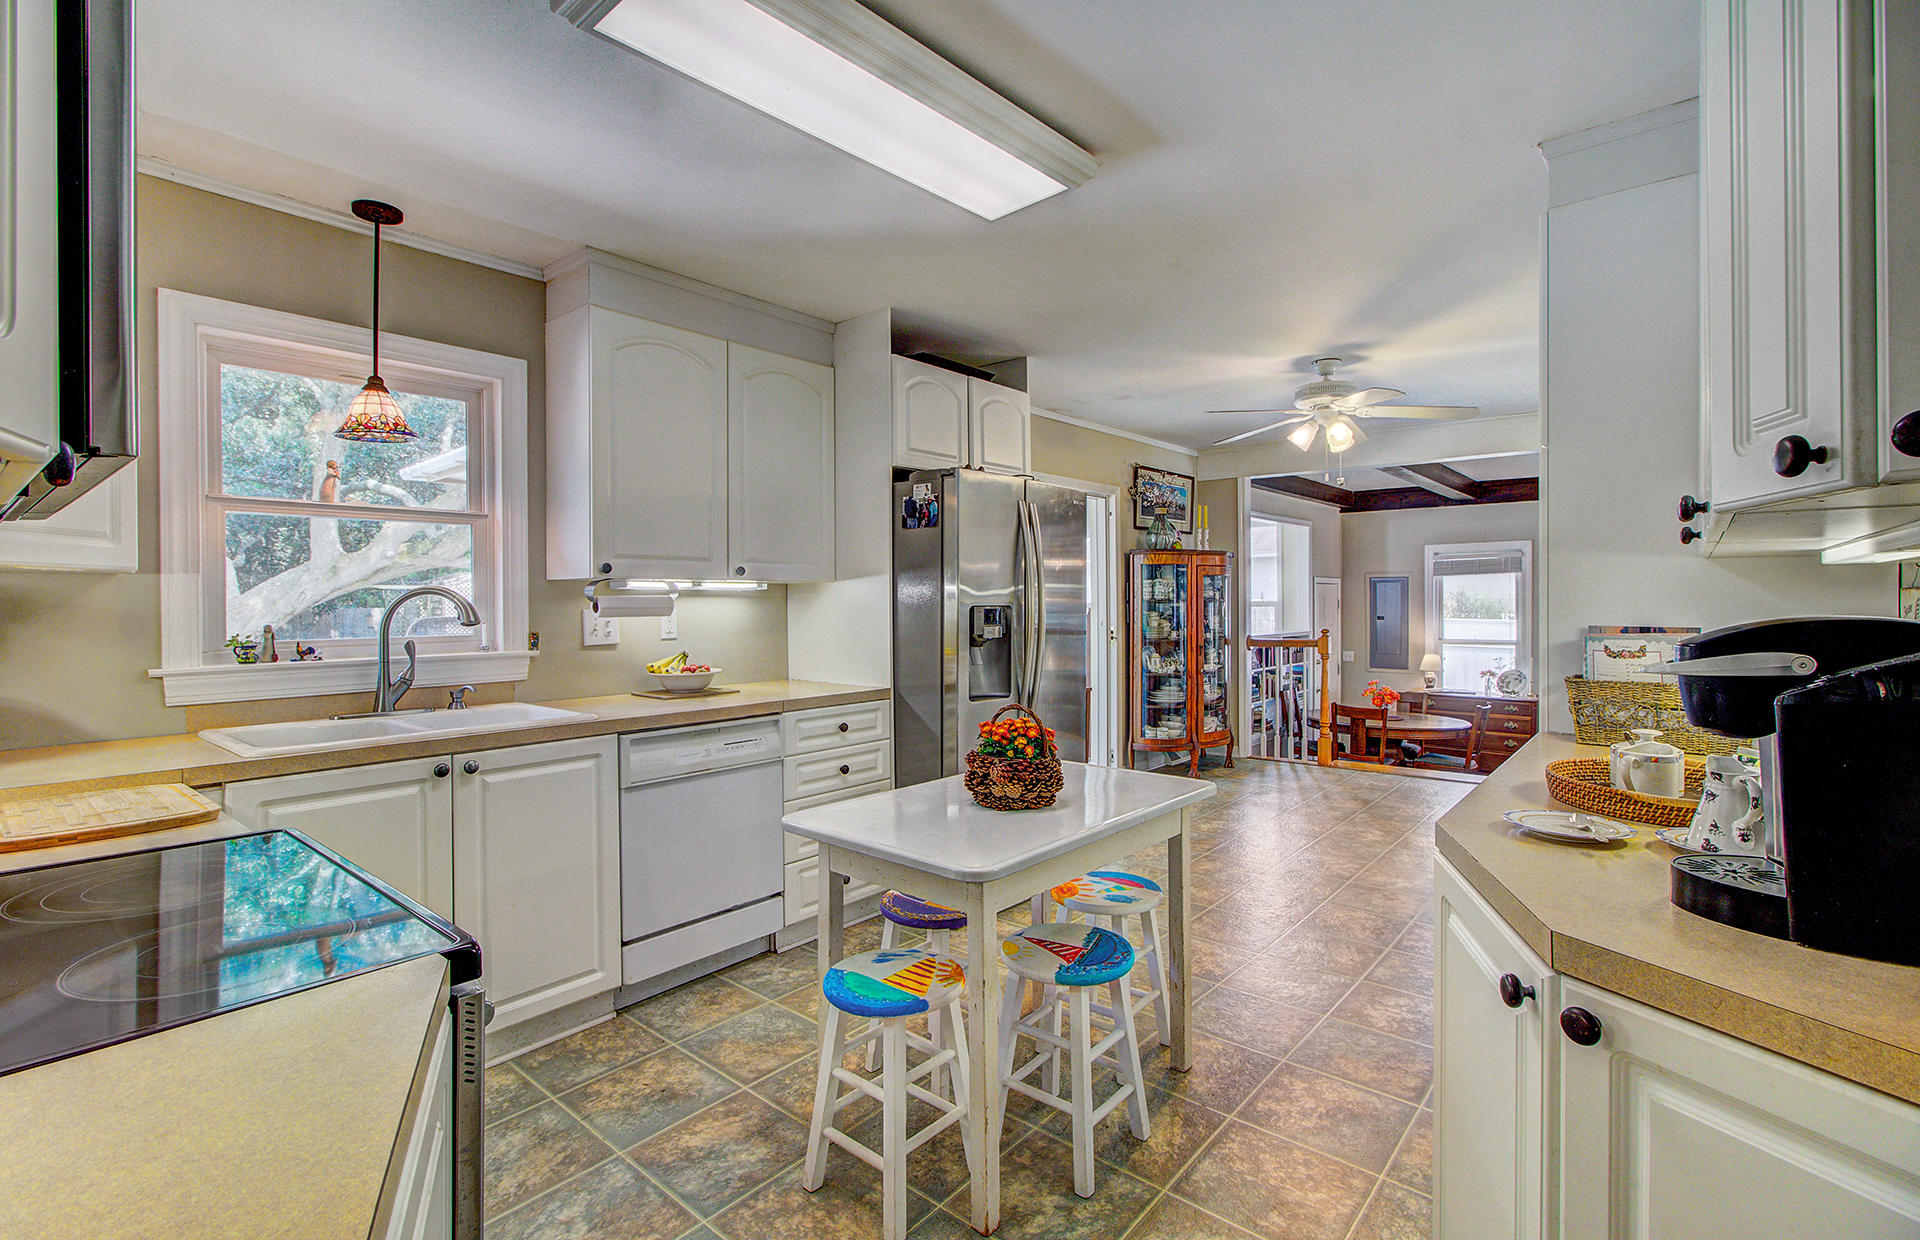 Sunset Shores Homes For Sale - 3646 Moonglow, Johns Island, SC - 29